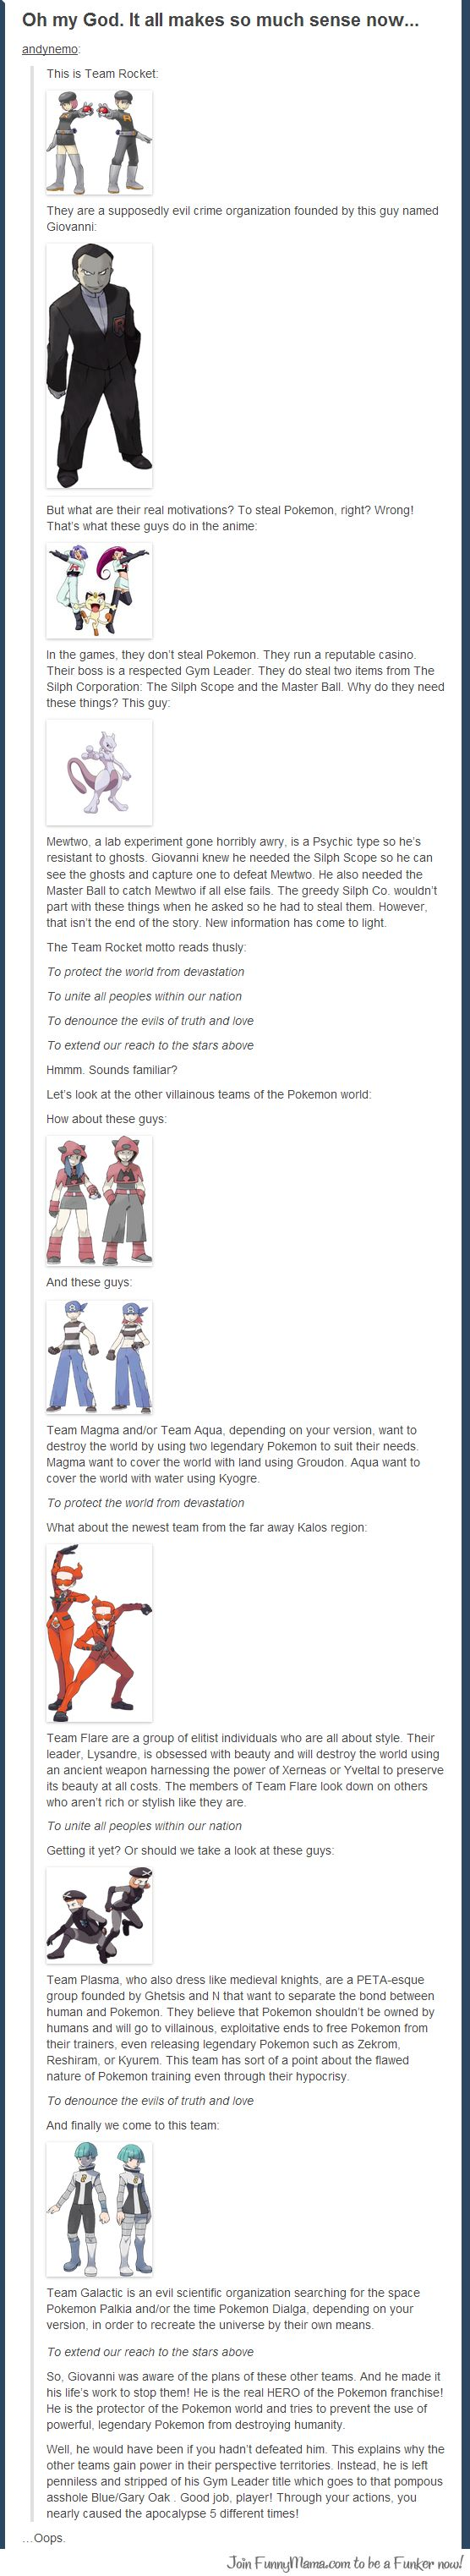 The real truth behind Team Rocket...welp, looks like i helped the apocalypse almost happen then